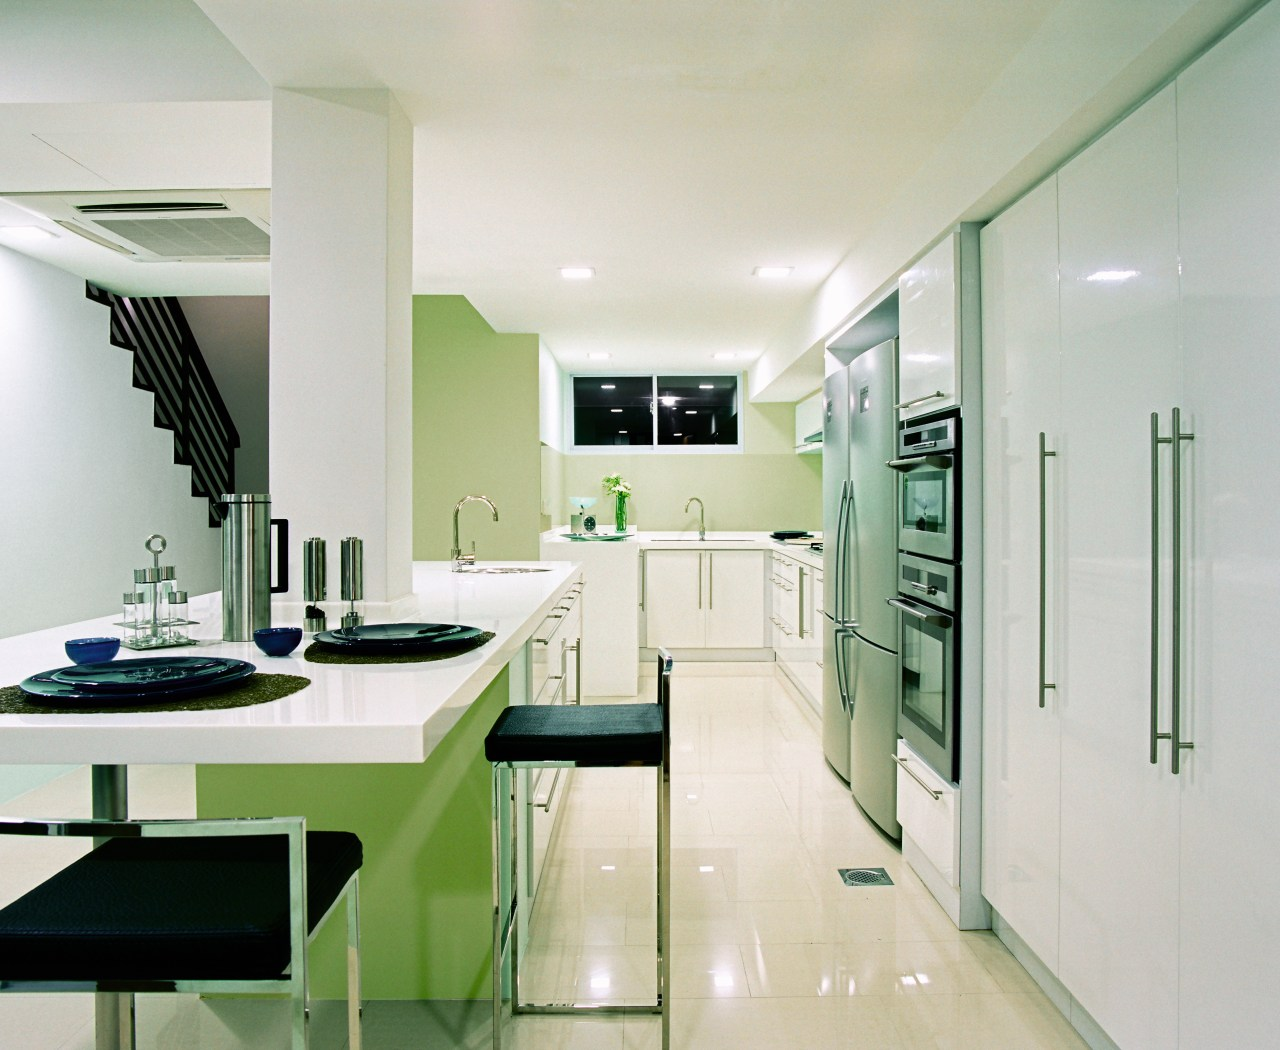 A view of this kitchen design by Ong countertop, interior design, kitchen, product design, room, gray, white